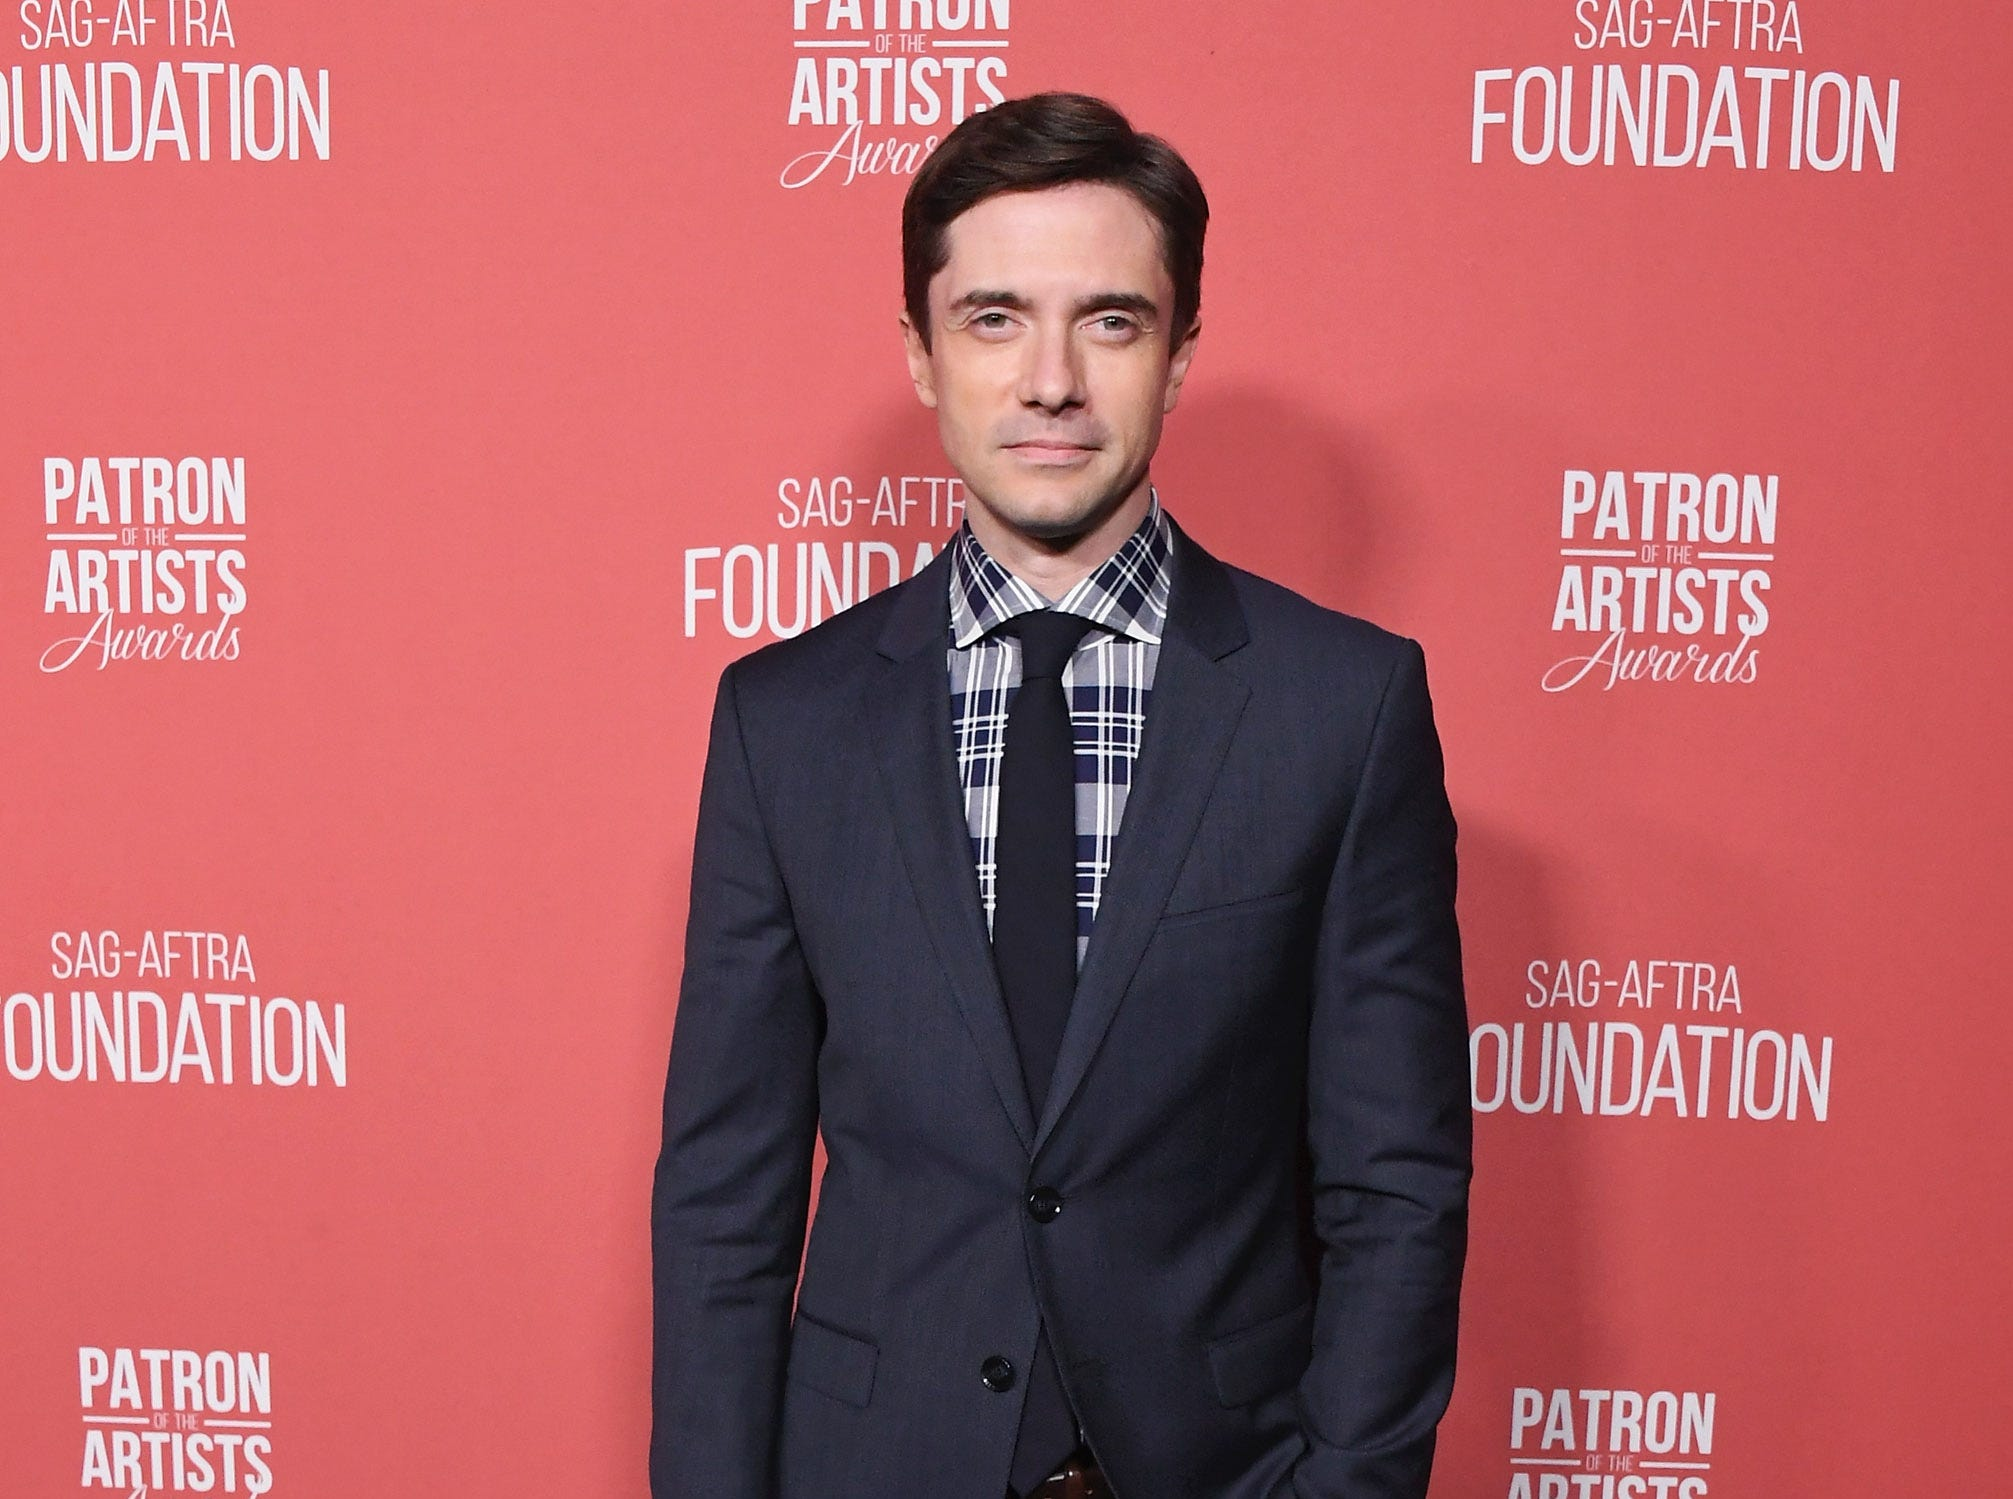 BEVERLY HILLS, CA - NOVEMBER 08:  Topher Grace attends SAG-AFTRA Foundation's 3rd Annual Patron Of The Artists Awards at Wallis Annenberg Center for the Performing Arts on November 8, 2018 in Beverly Hills, California.  (Photo by Jon Kopaloff/FilmMagic) ORG XMIT: 775233471 ORIG FILE ID: 1059469434